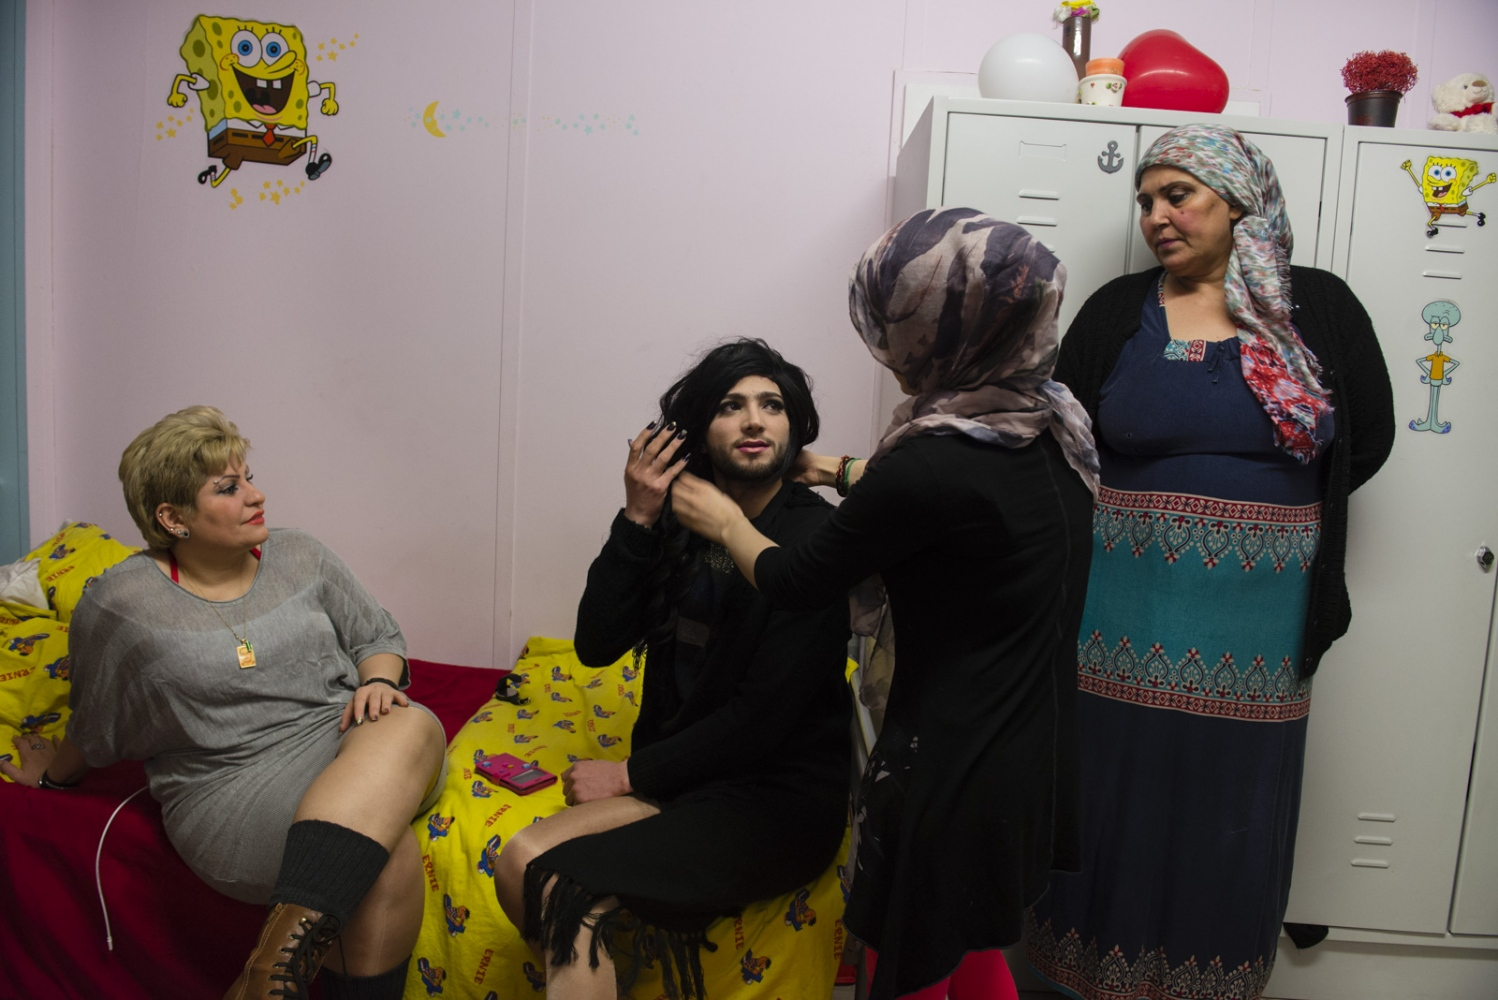 BERLIN | GERMANY | 2017-02-26 | Inside a refugee camp, three Iraqi women, help Ward (22) to dress up as a drag queen for a gay party. Ward (his nickname which means Rose in arabic) is from Aleppo and arrived in Germany as a refugee in 2015. He was placed in a small town in northern Germany bordering with Denmark, called Bredstedt, by the immigration service but being a gay refugee in a small German town has not been easy for him. He has been transferred to other towns twice so far.